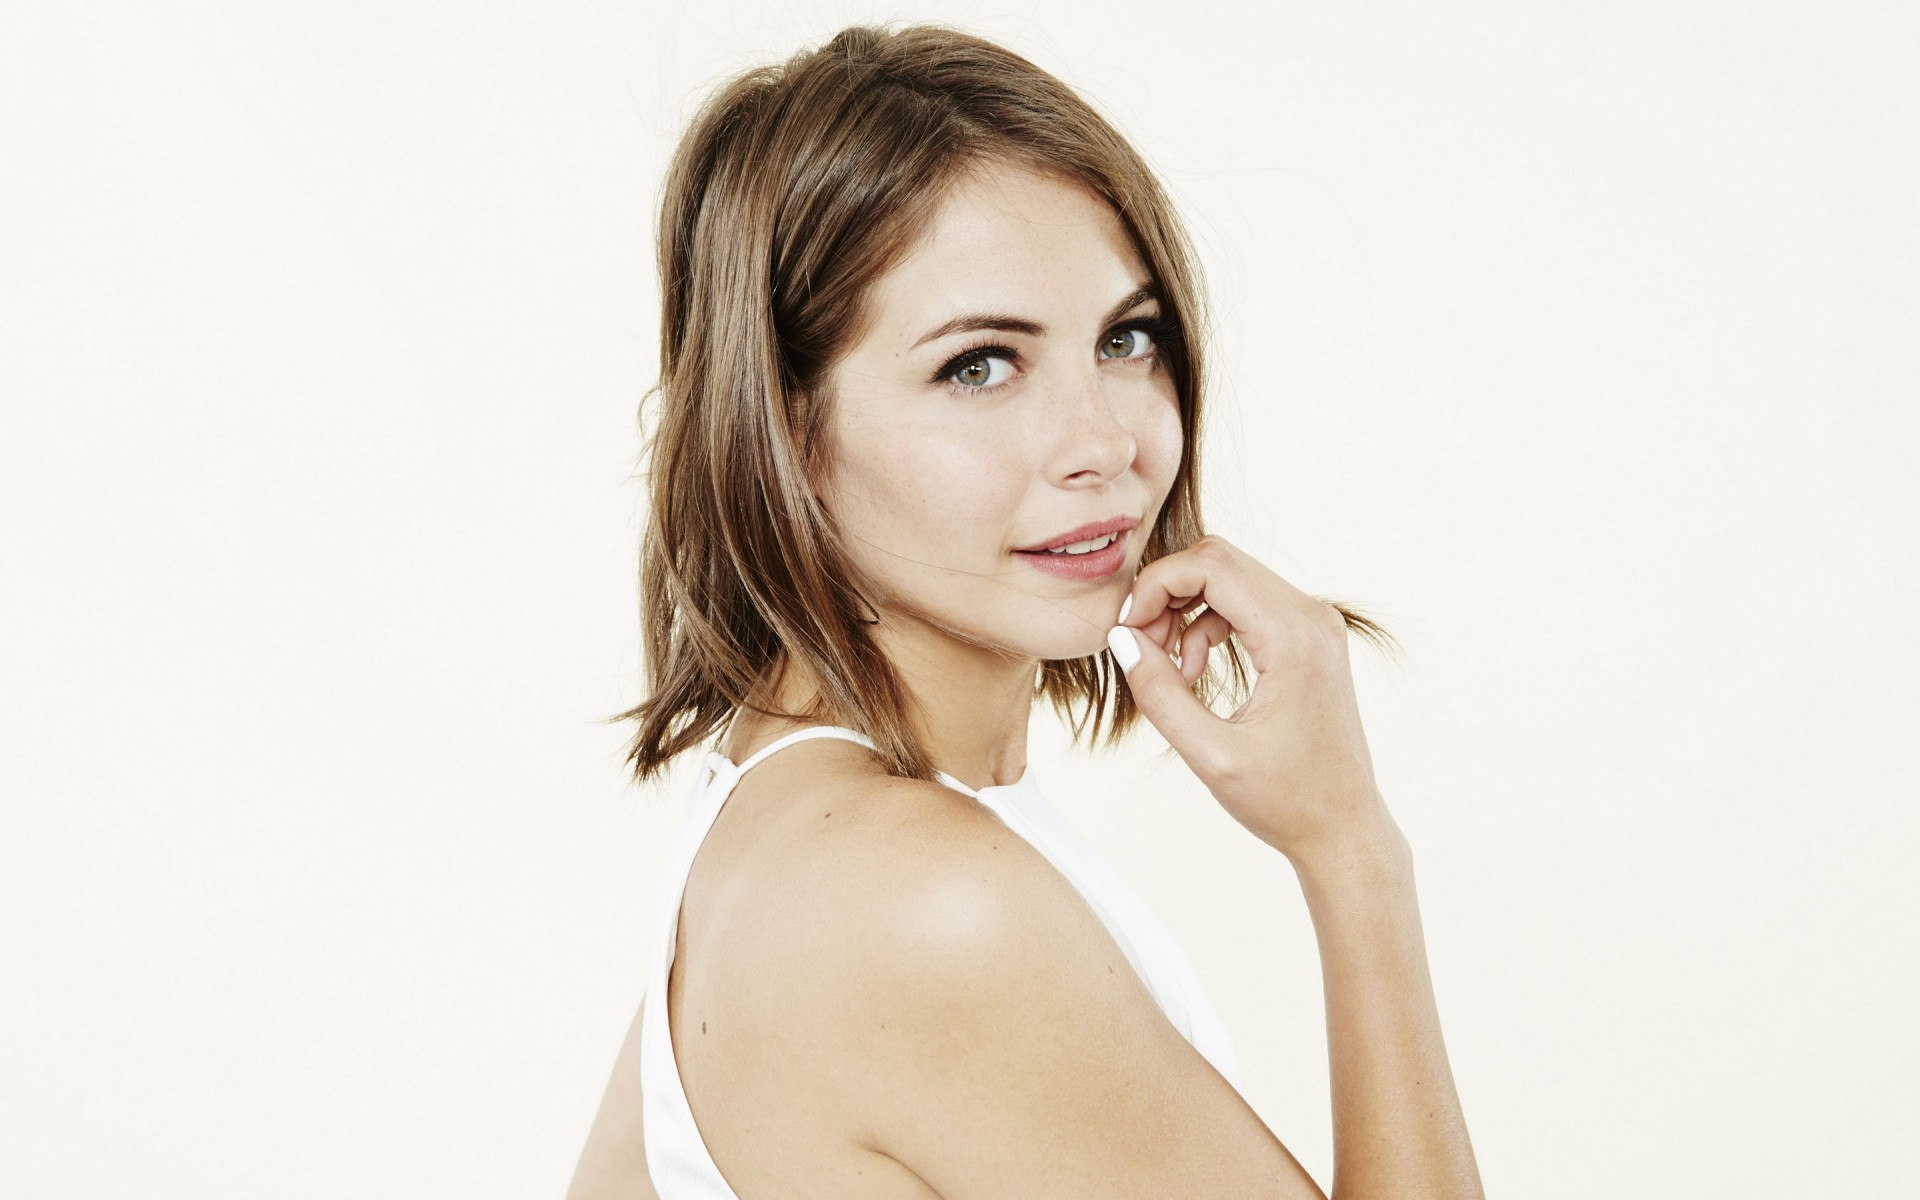 Cute Japanese Iphone Wallpaper Willa Holland 2017 Wallpapers Hd Wallpapers Id 20100